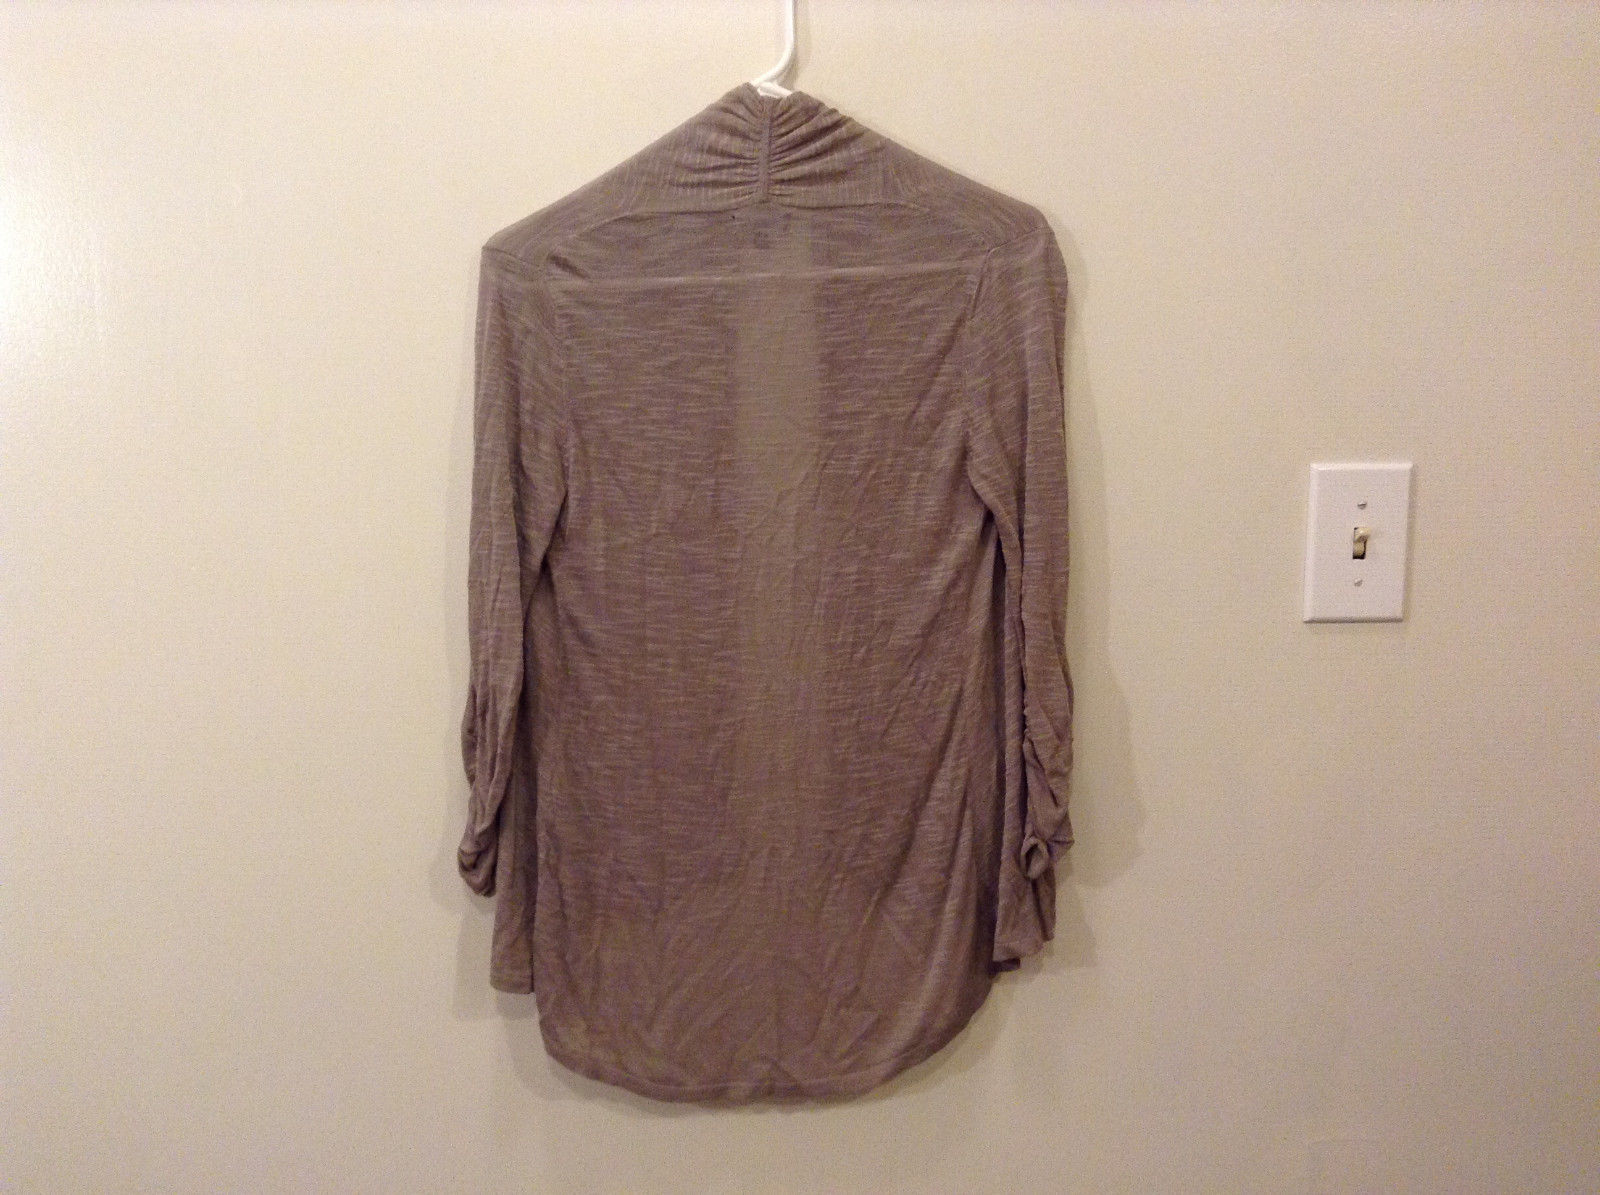 Express Gray Sweater Cardigan No Closure 3/4 Sleeve Size XS